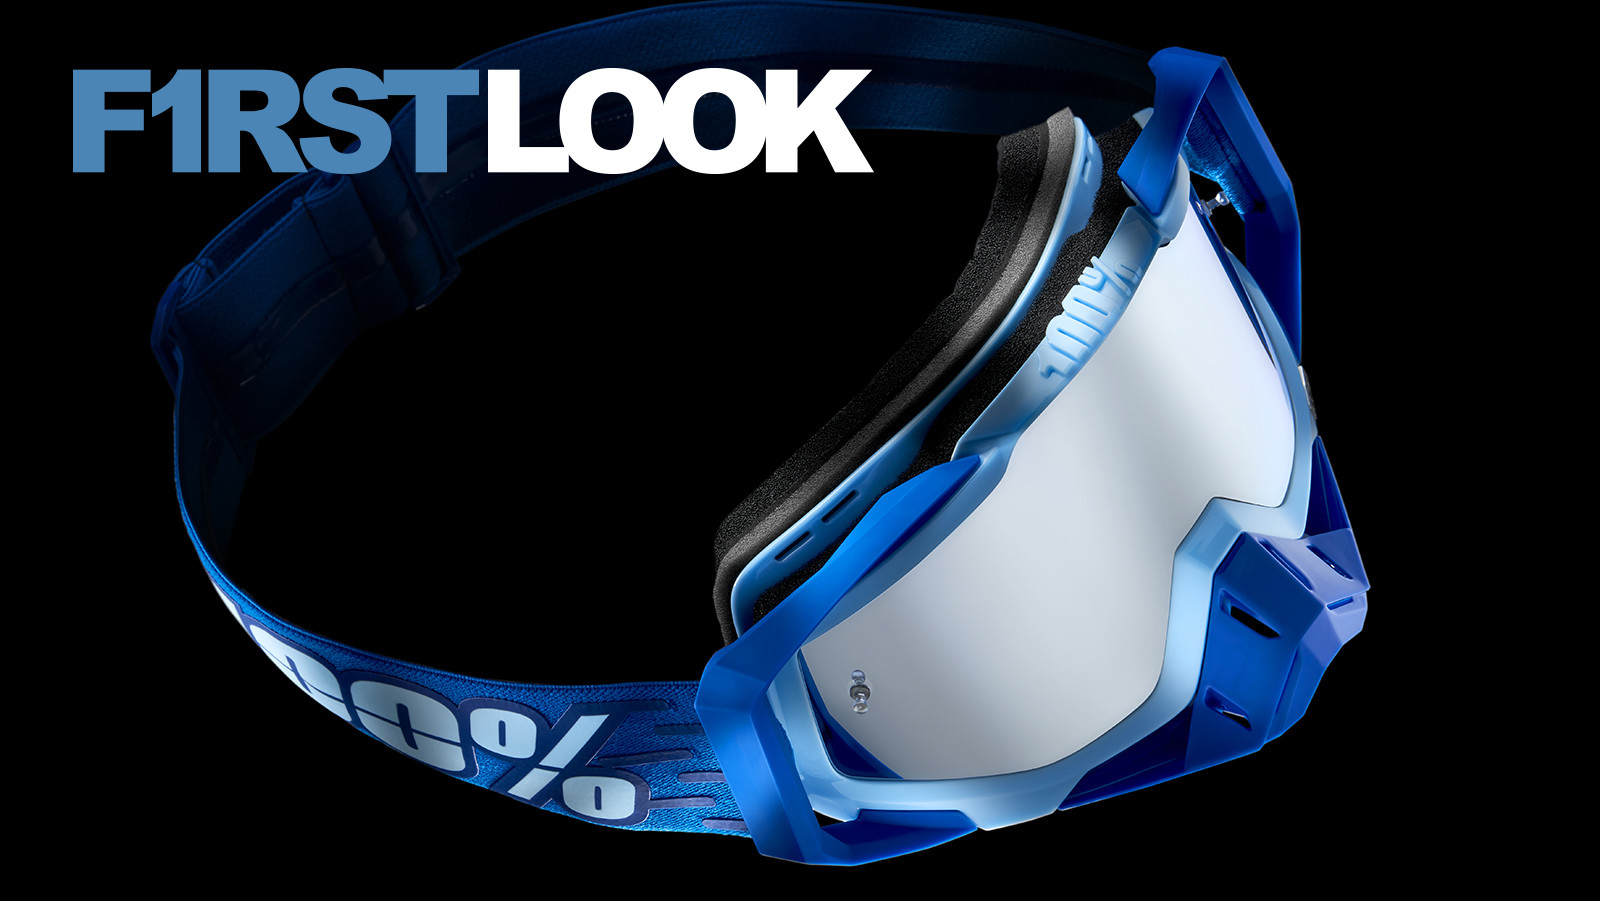 First Look: 100% Racecraft Plus Goggle